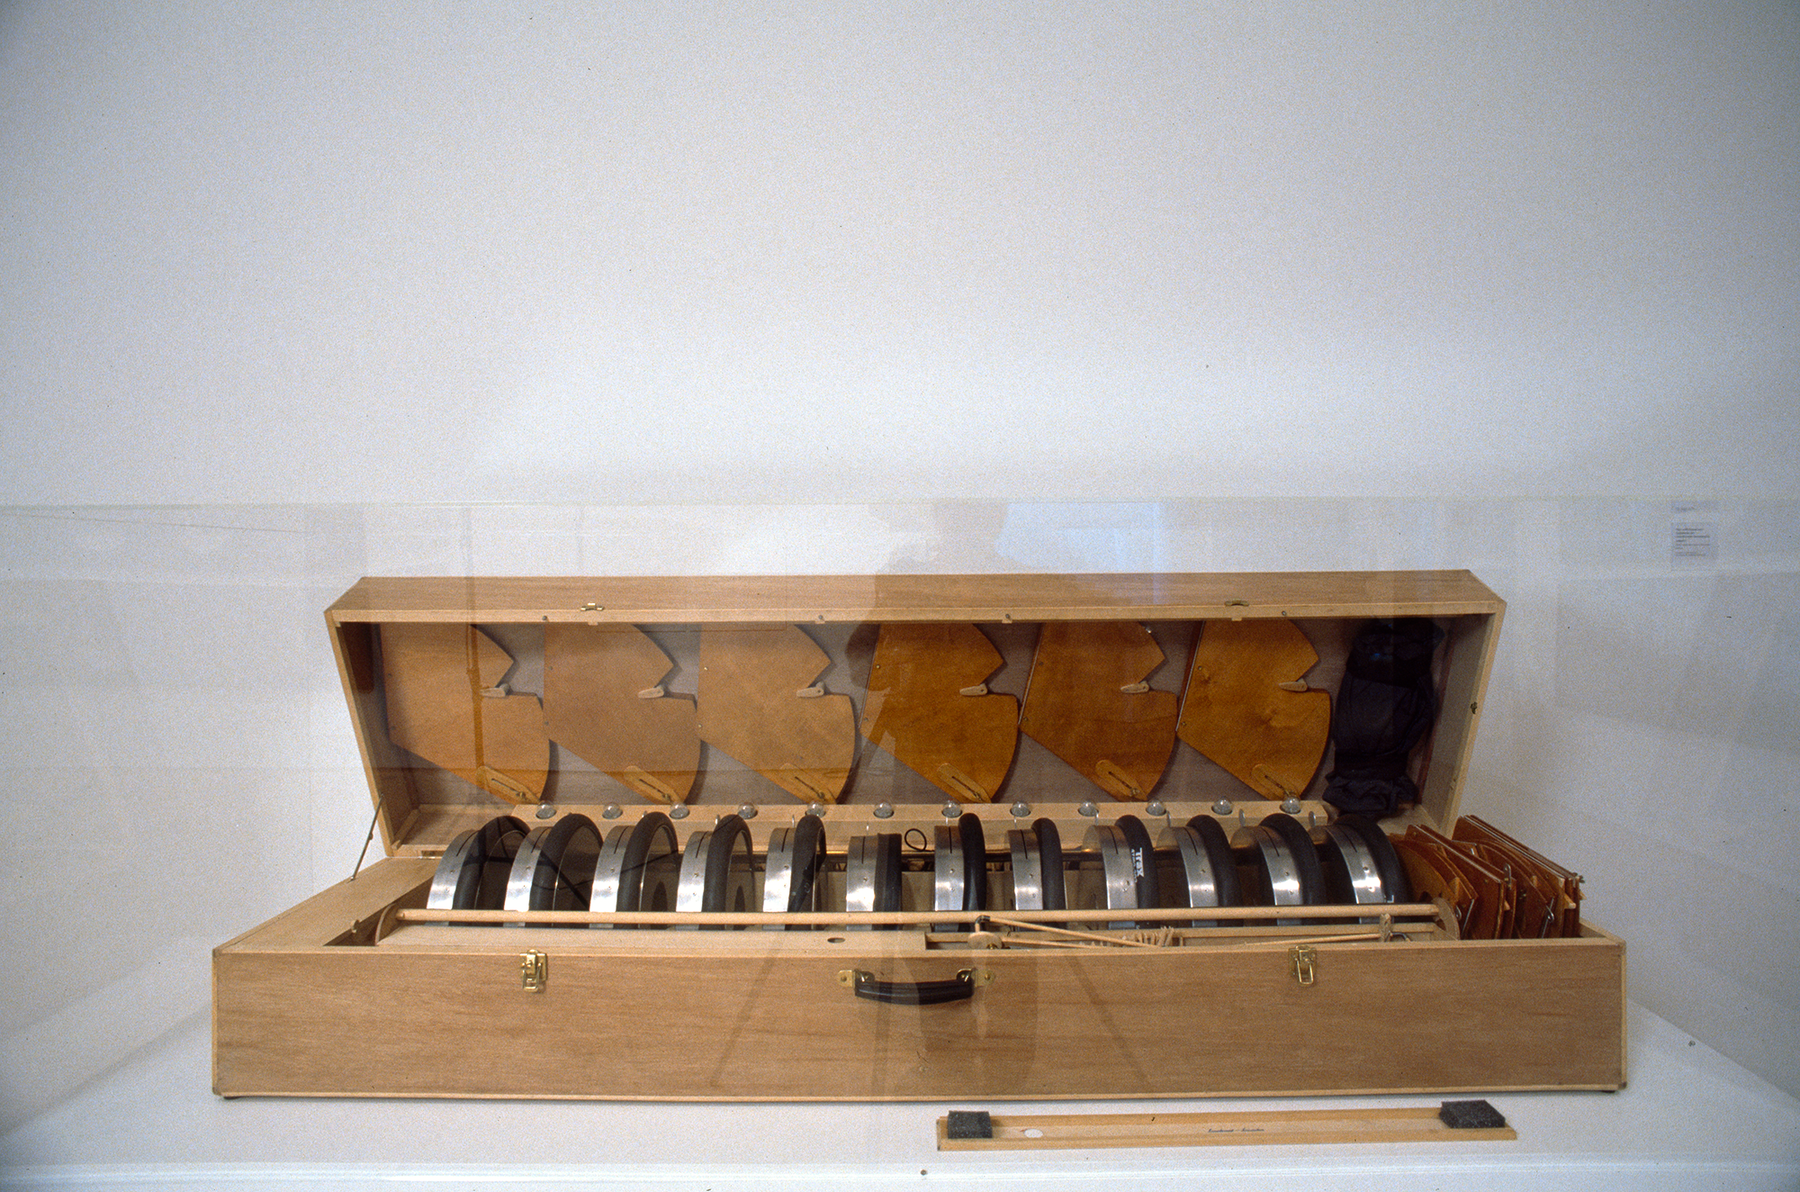 A large wooden case filled with metal and wooden objects